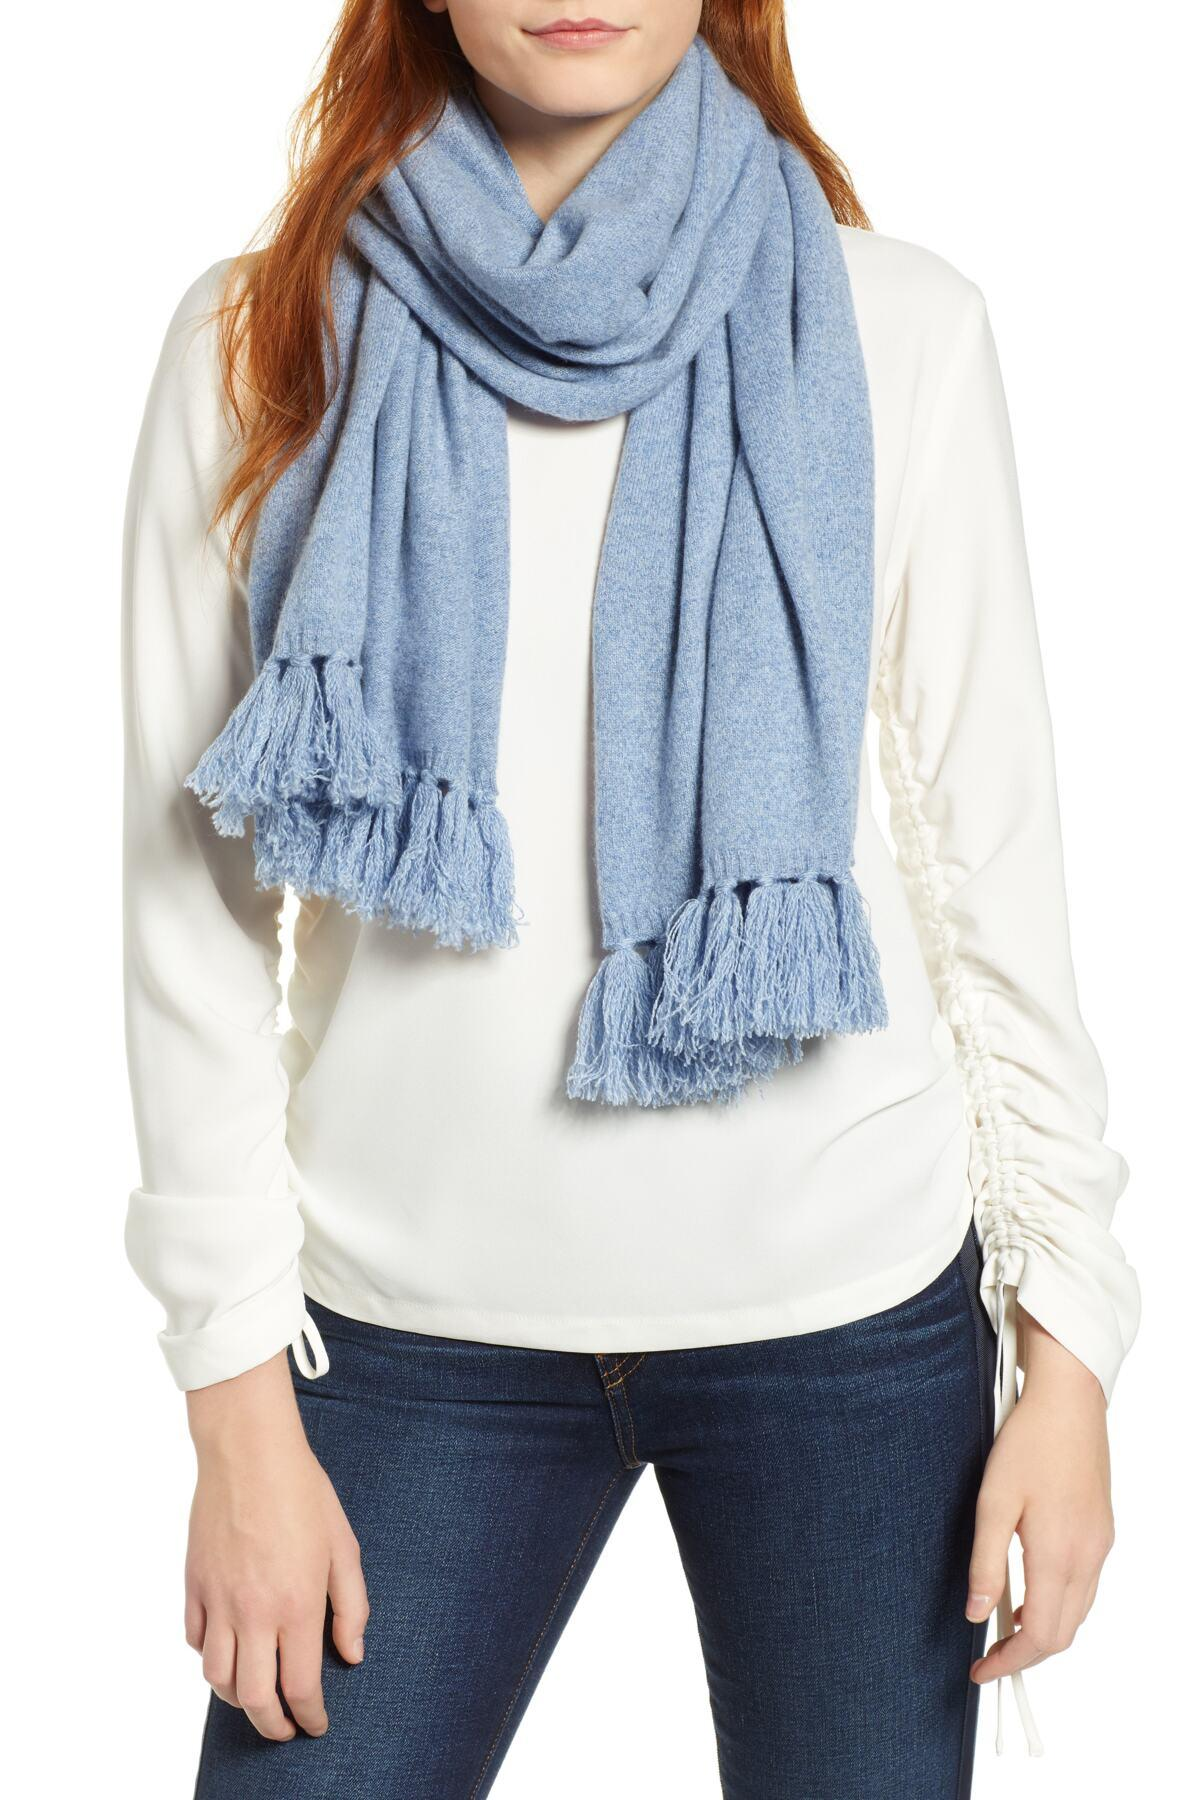 Brand New In Package Navy Combo Colorblock Knit Cashmere Scarf By HALOGEN $99